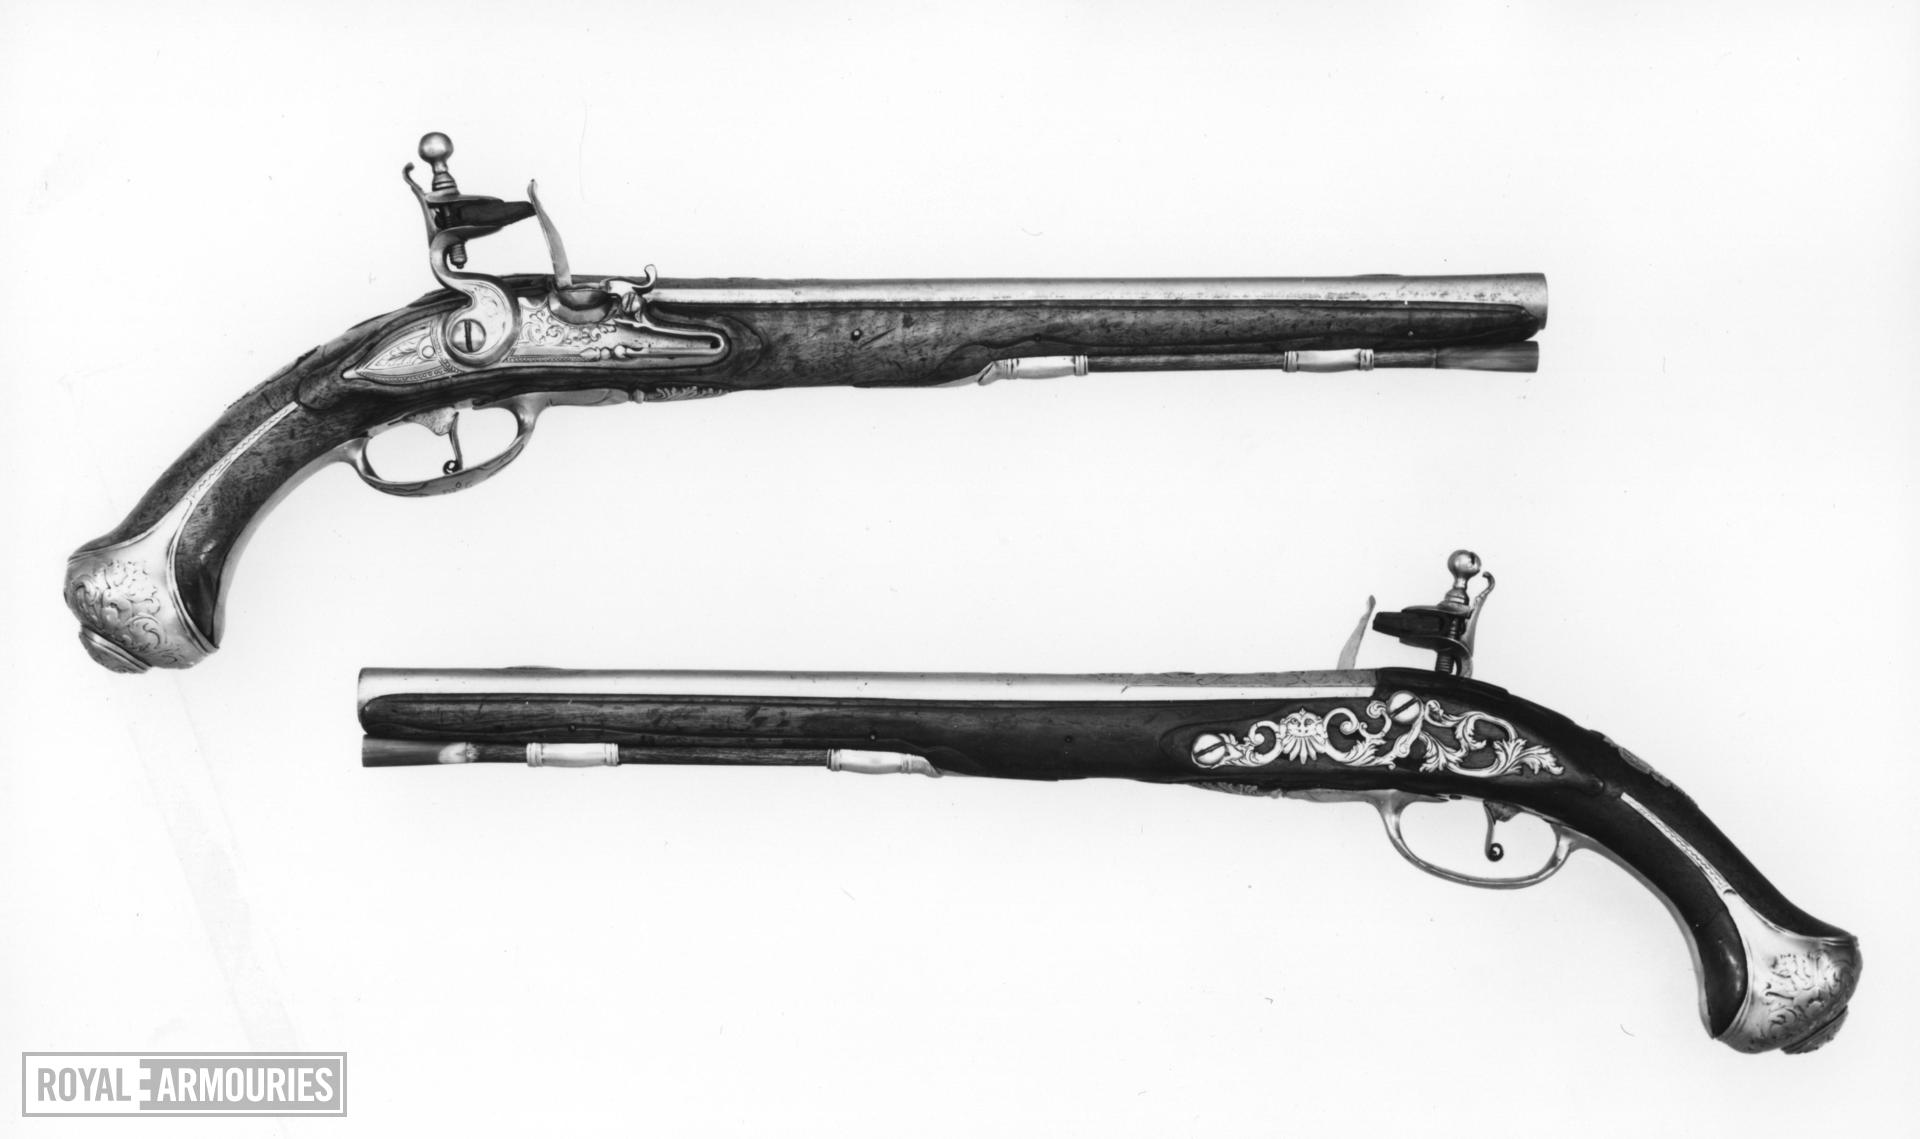 Flintlock military pistol